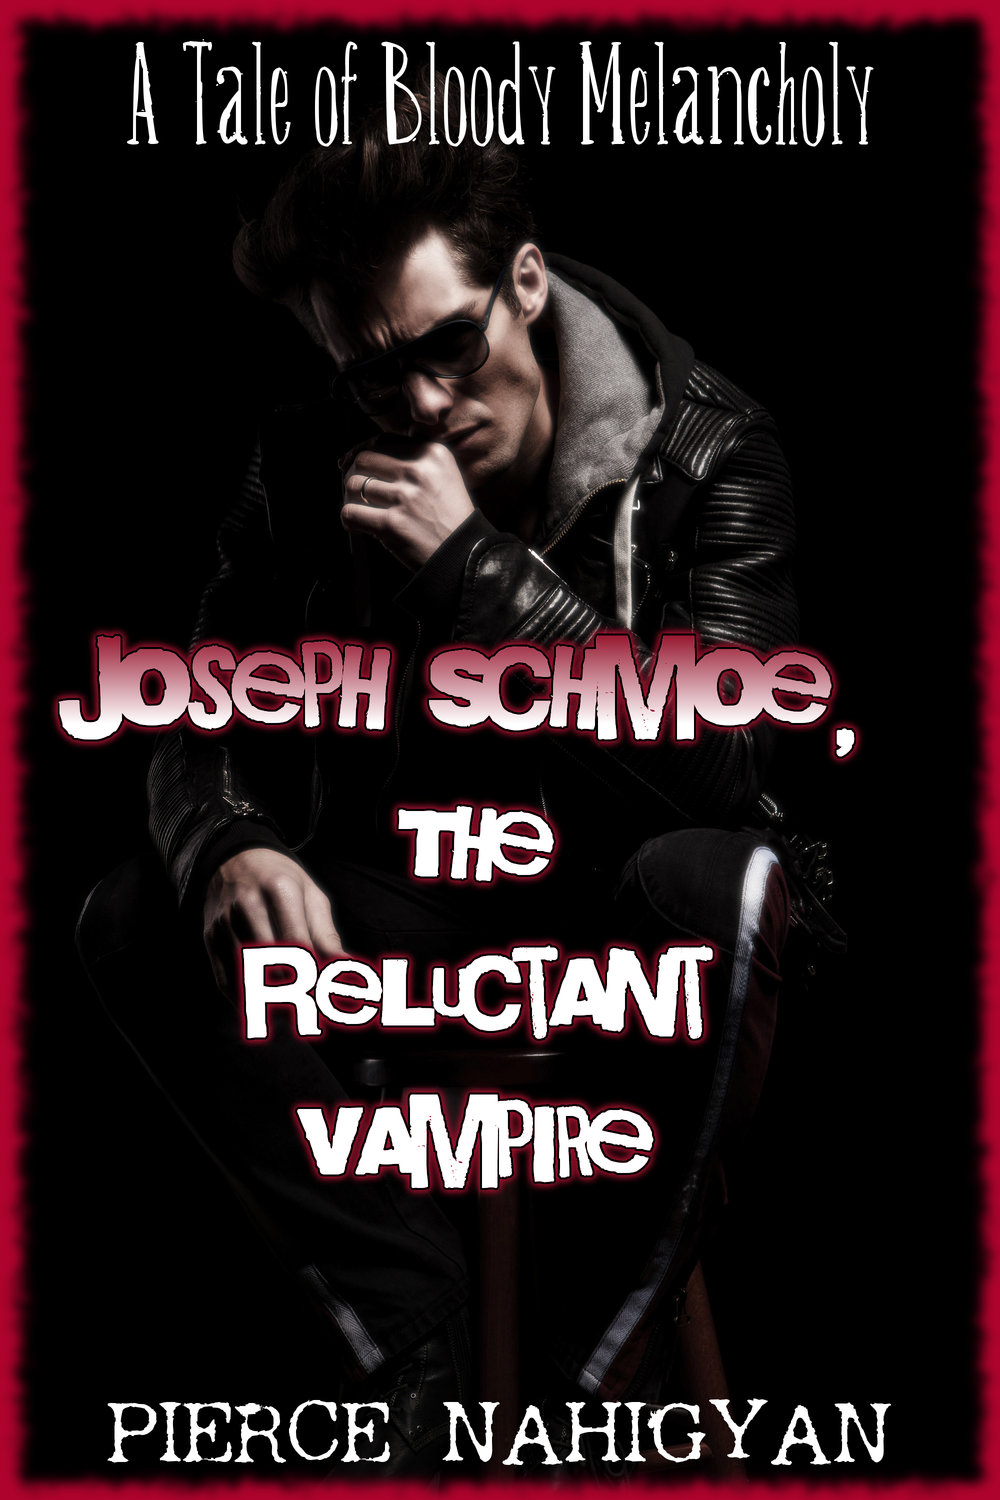 Joseph Schmoe, The Reluctant Vampire